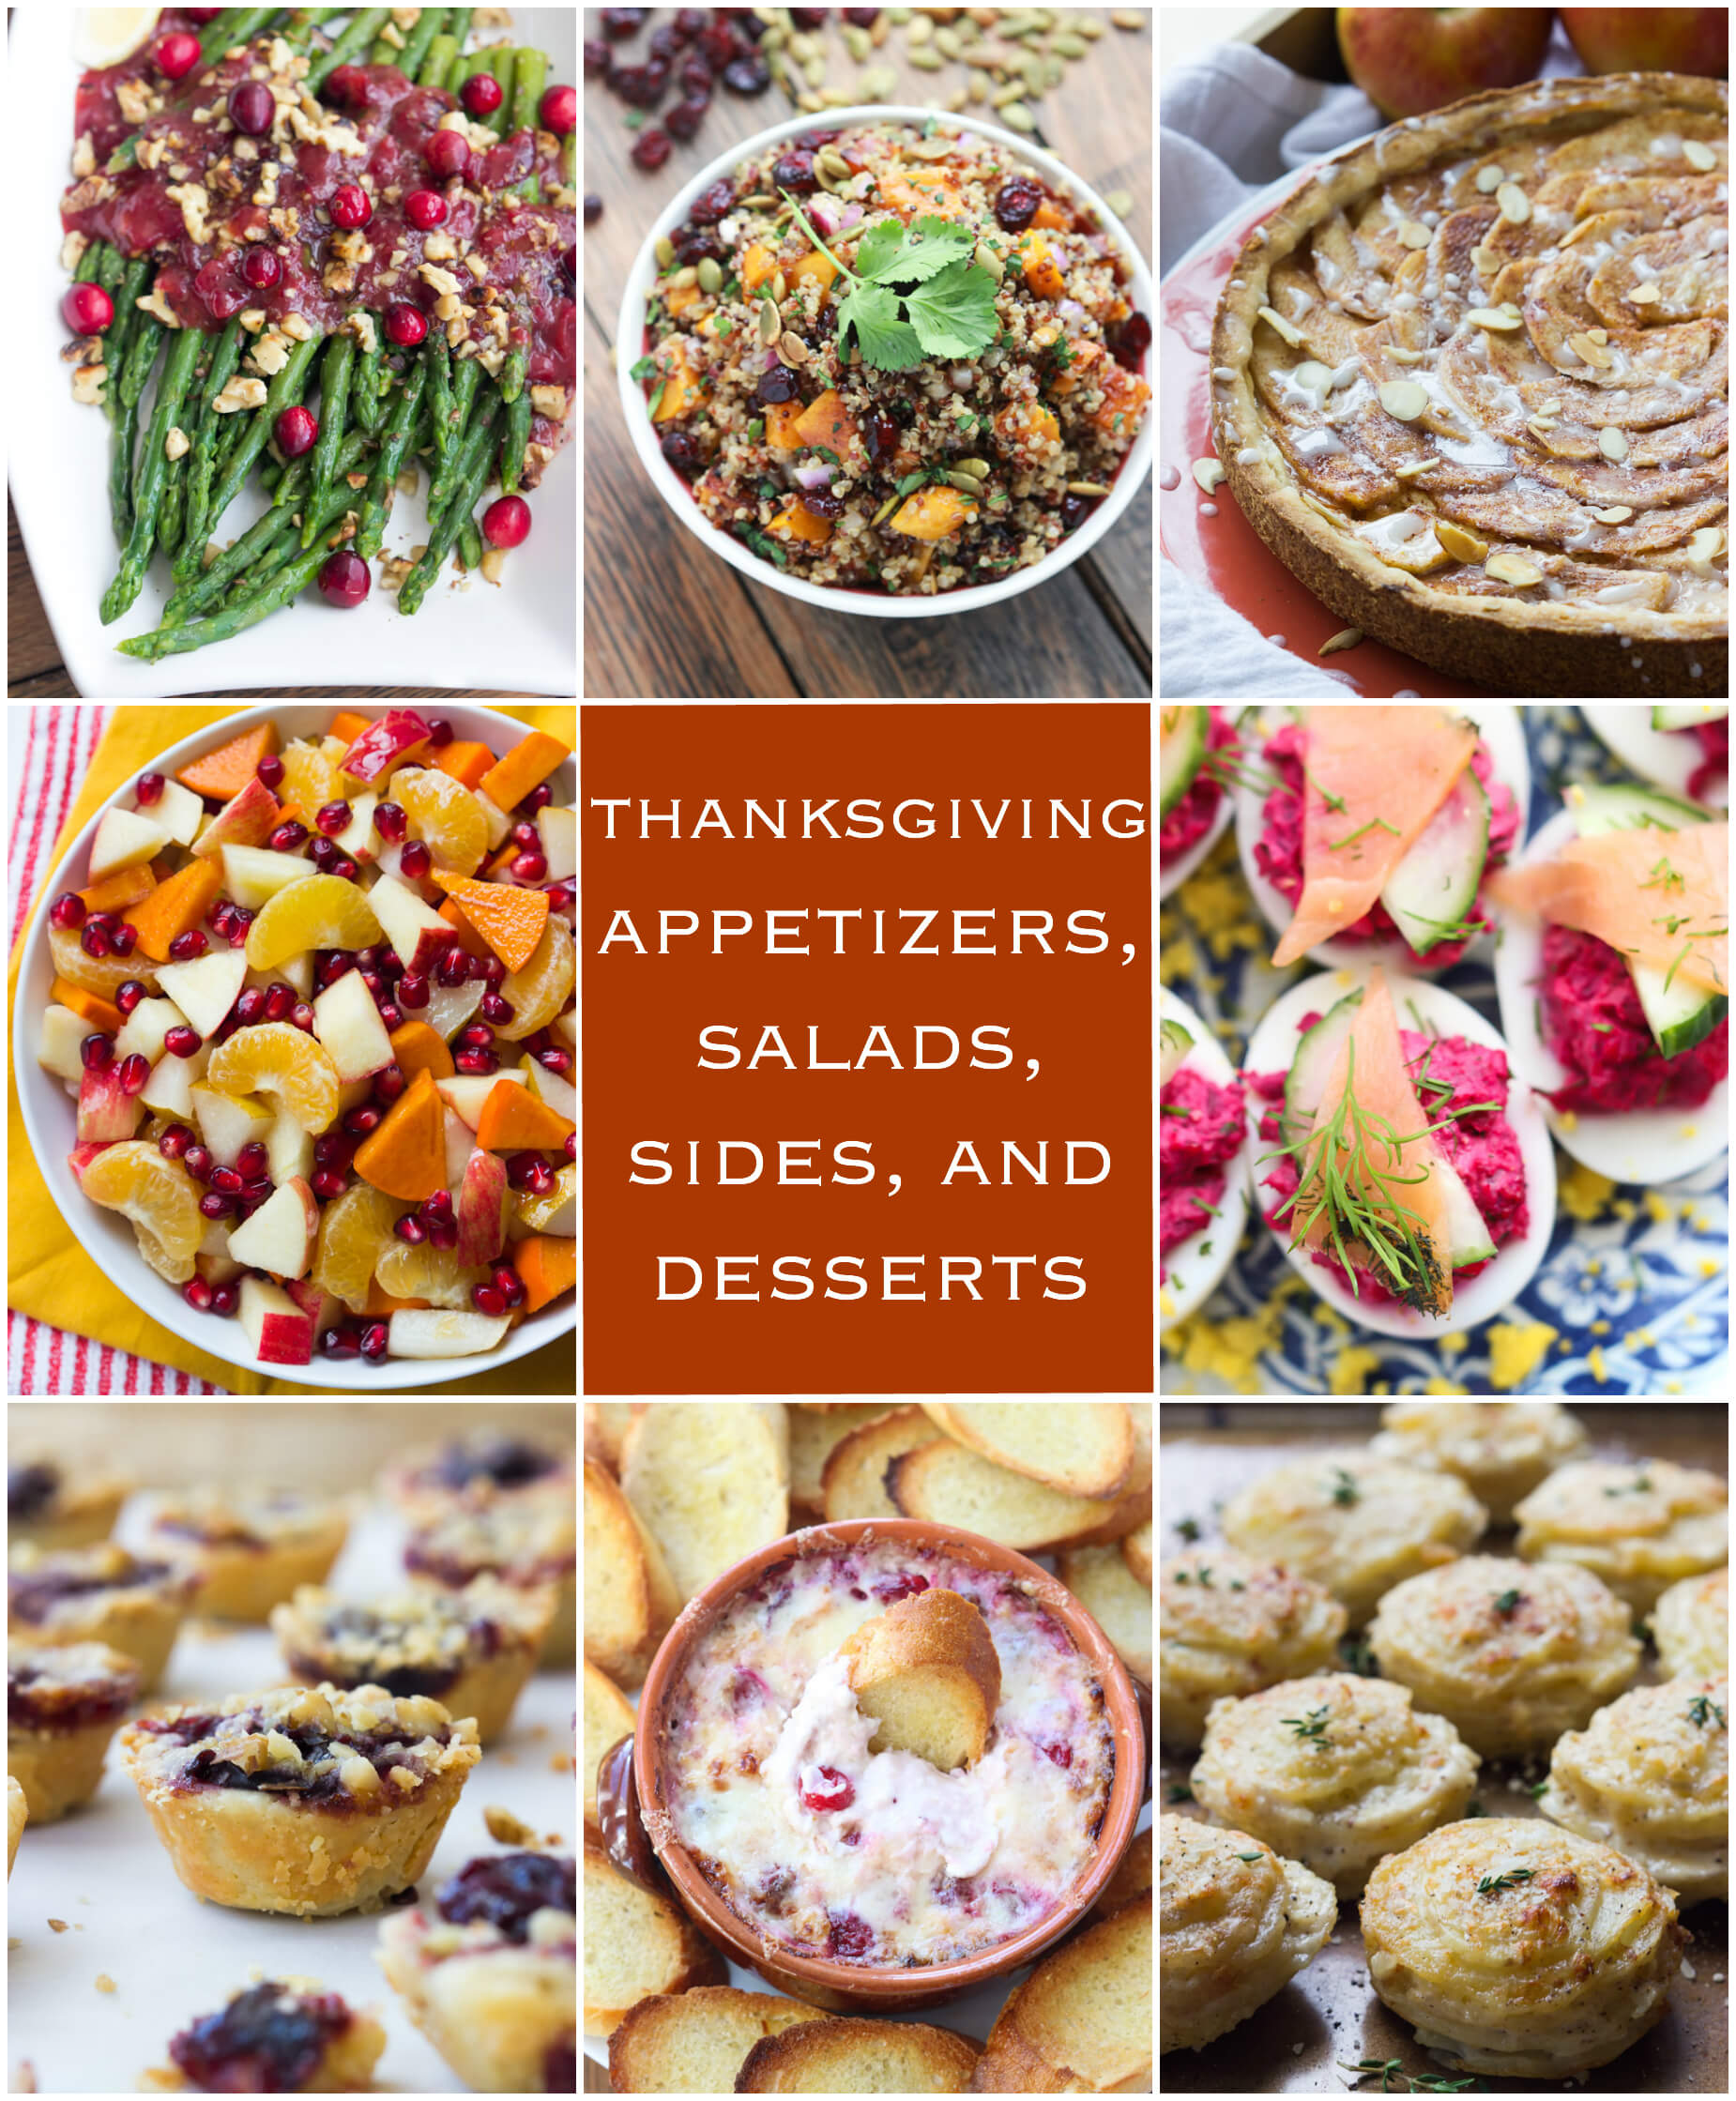 Thanksgiving Appetizers, Salads, Sides, And Desserts